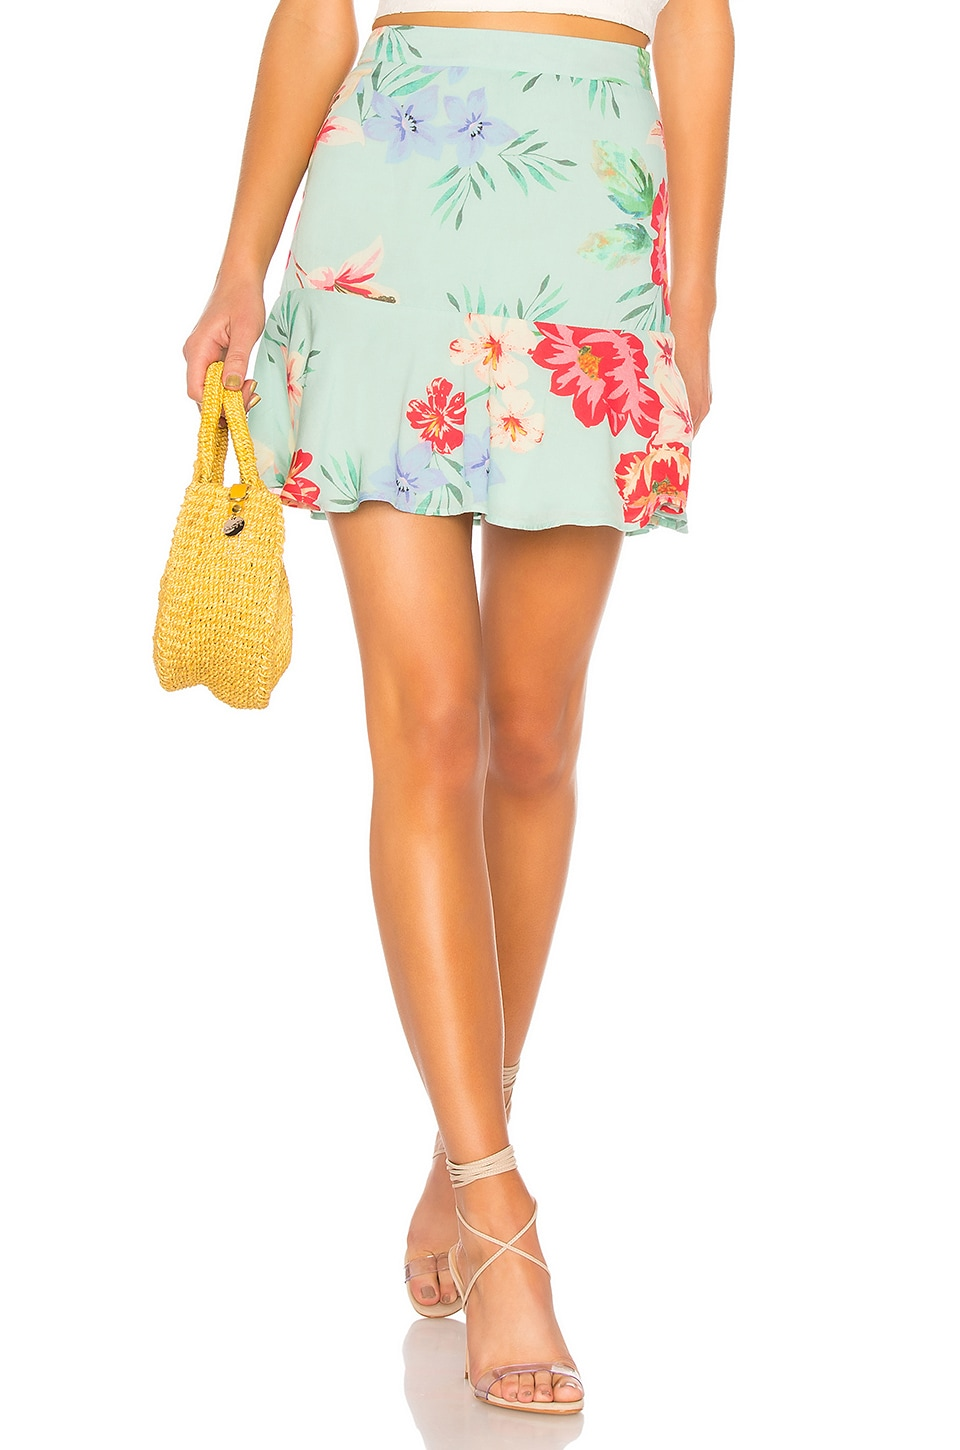 Privacy Please Bayberry Mini Skirt in Blue Aleissa Floral